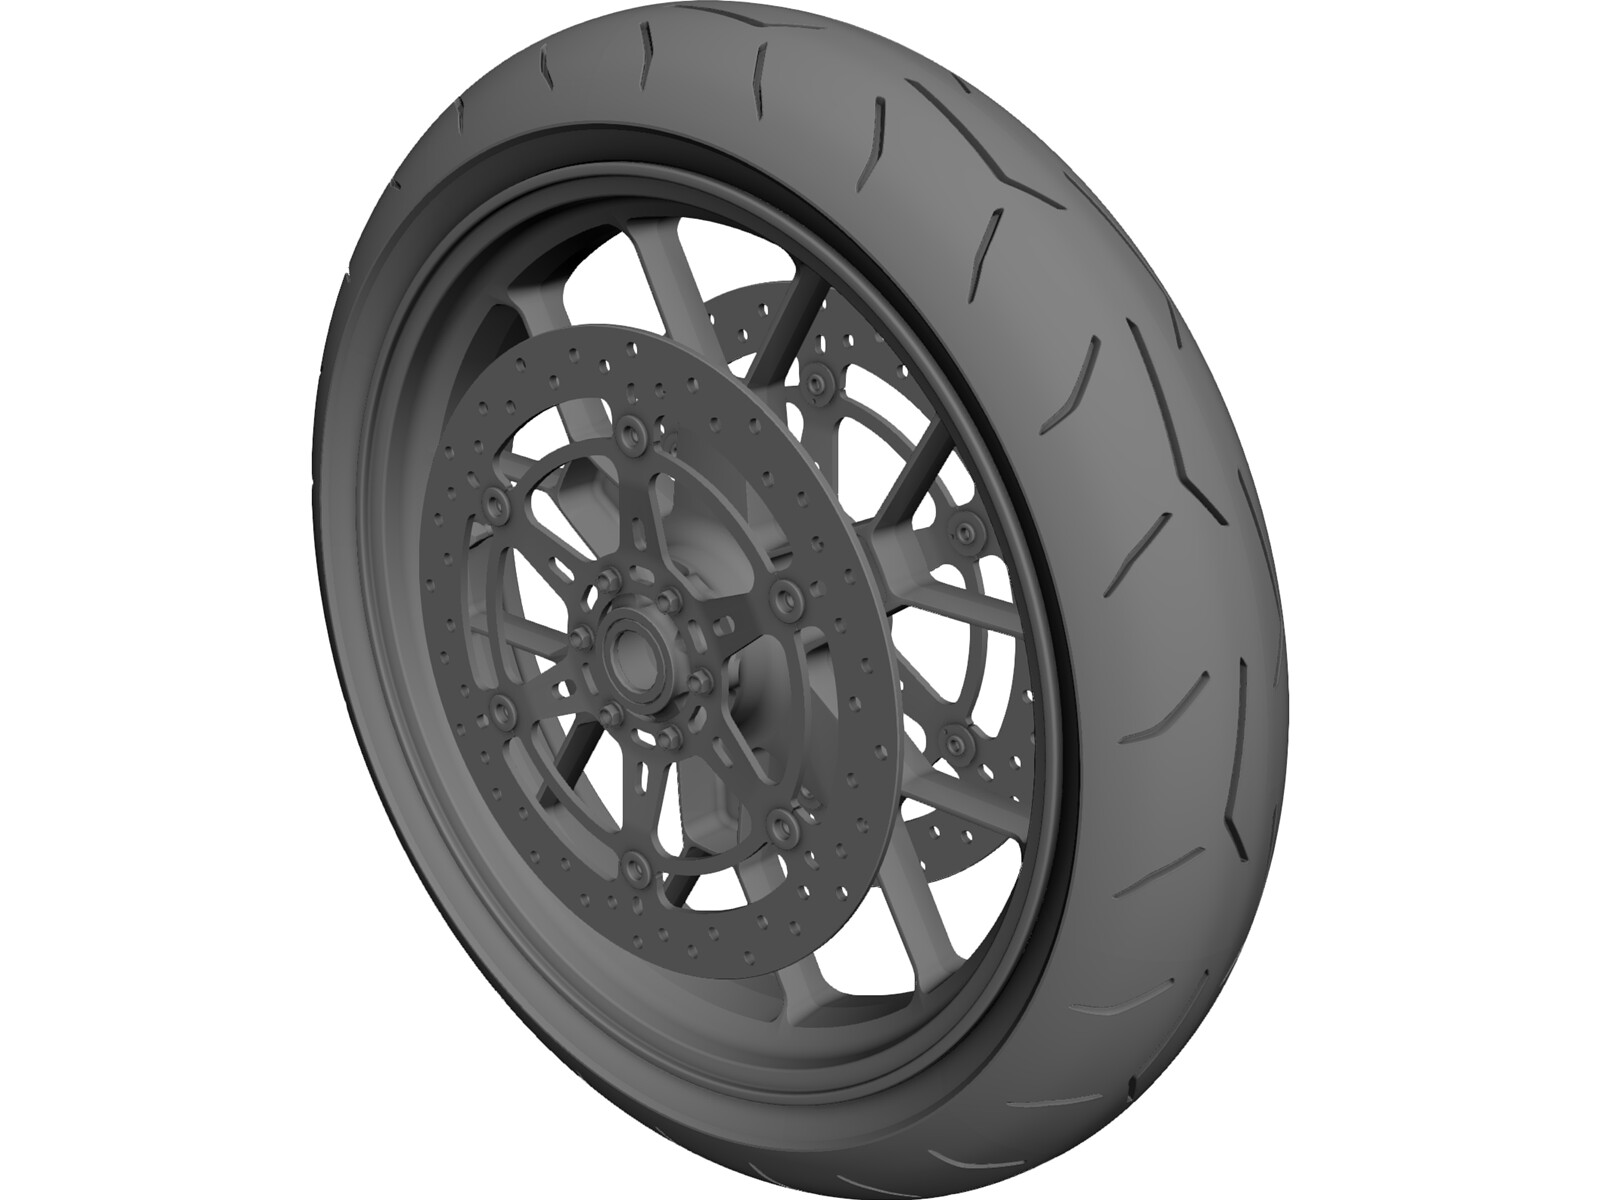 Motorcycle Front Wheel 3D CAD Model